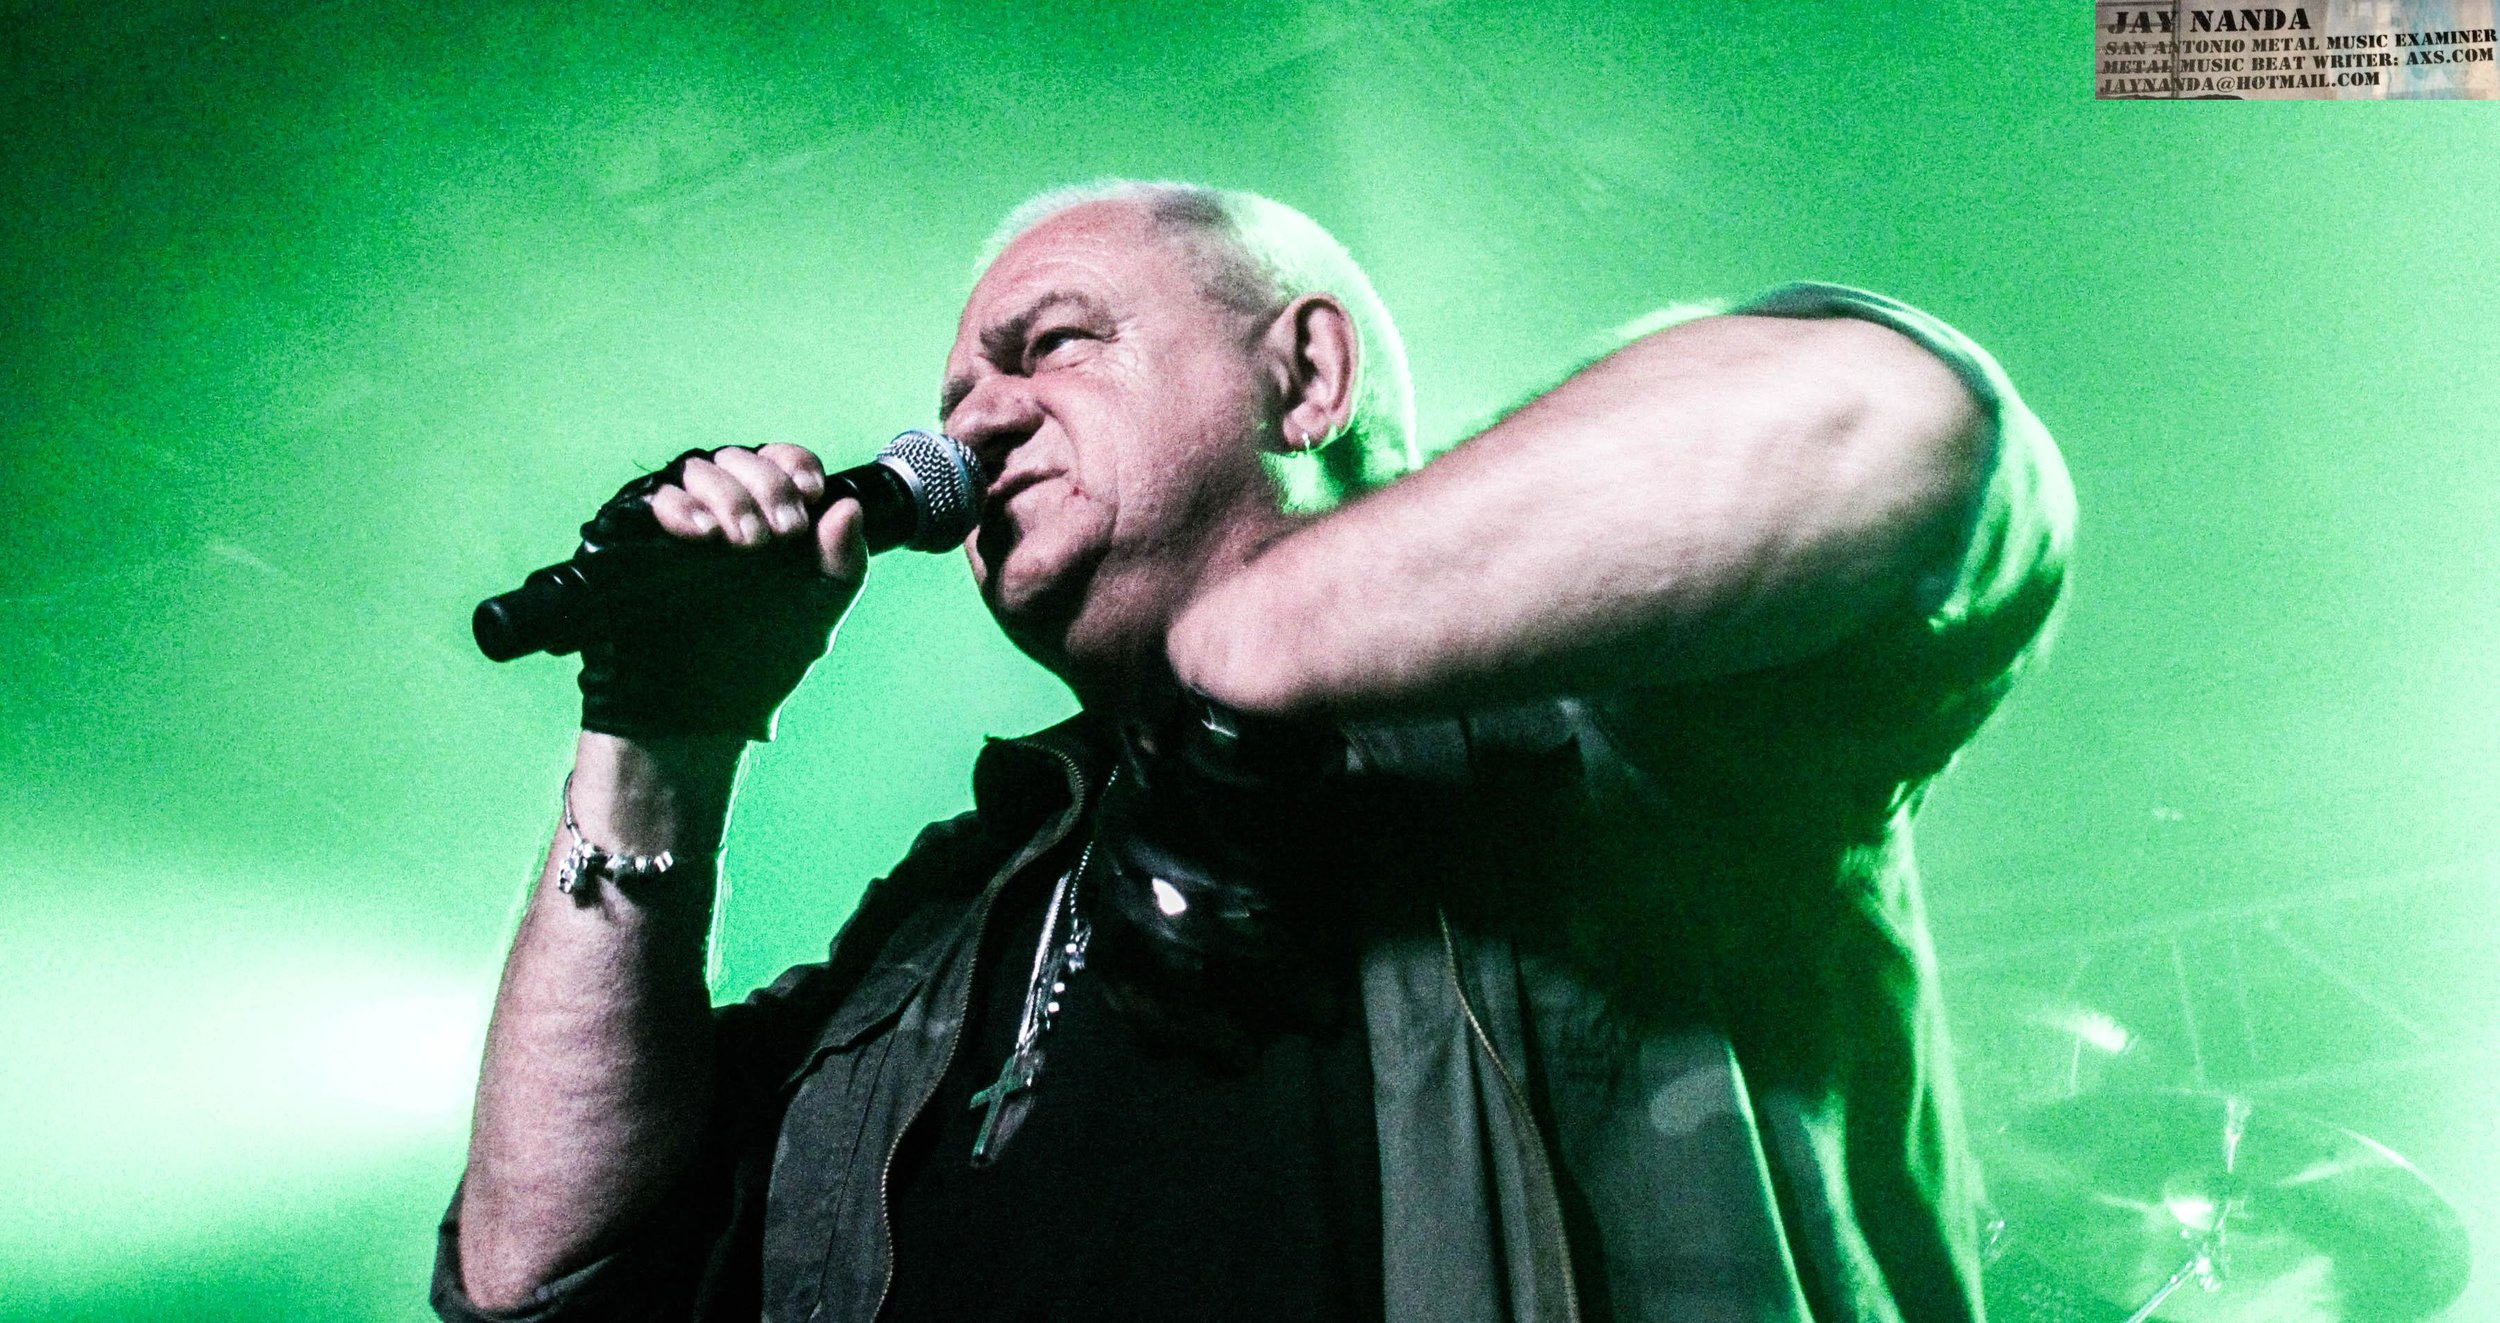 Dirkschneider played an hour and 48 minutes of his classic Accept tracks as part of a much different set from his Part 1 visit last year.